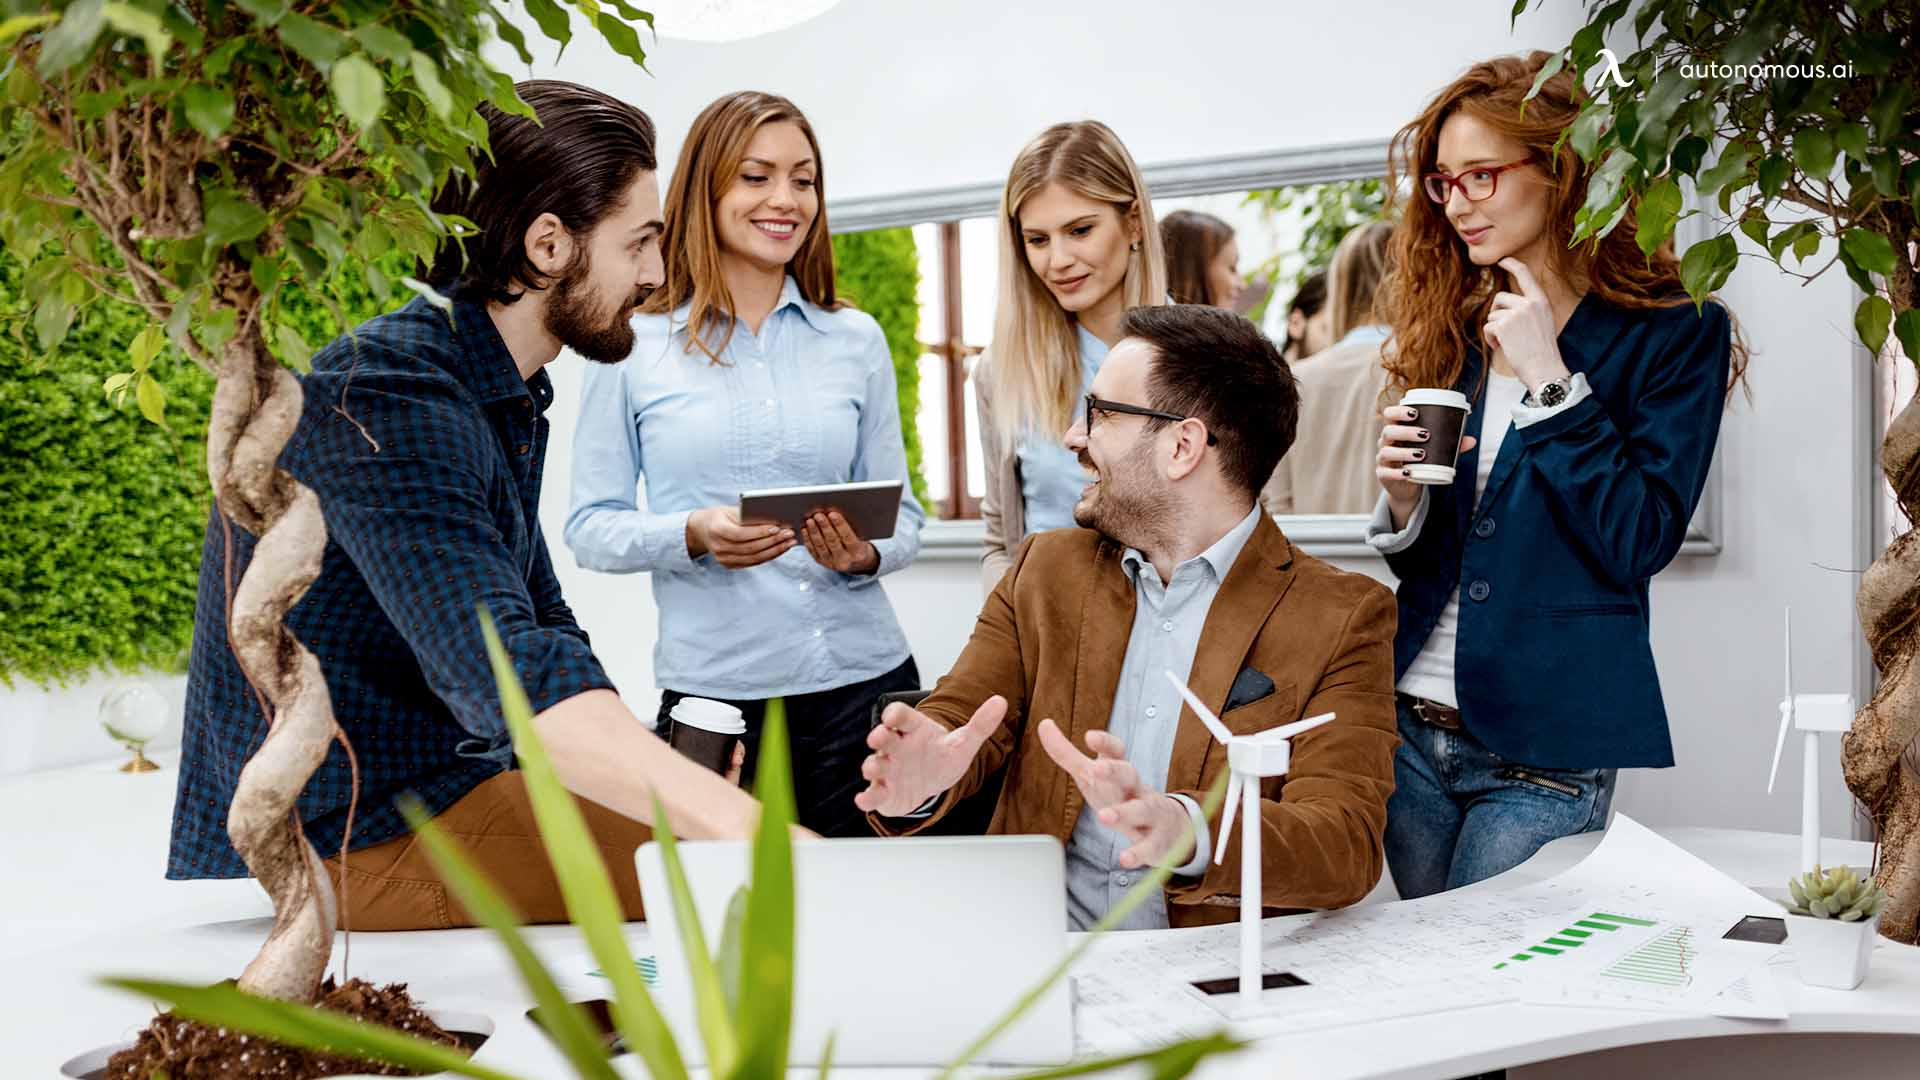 Why does Increasing Productivity in the Workplace Matter?